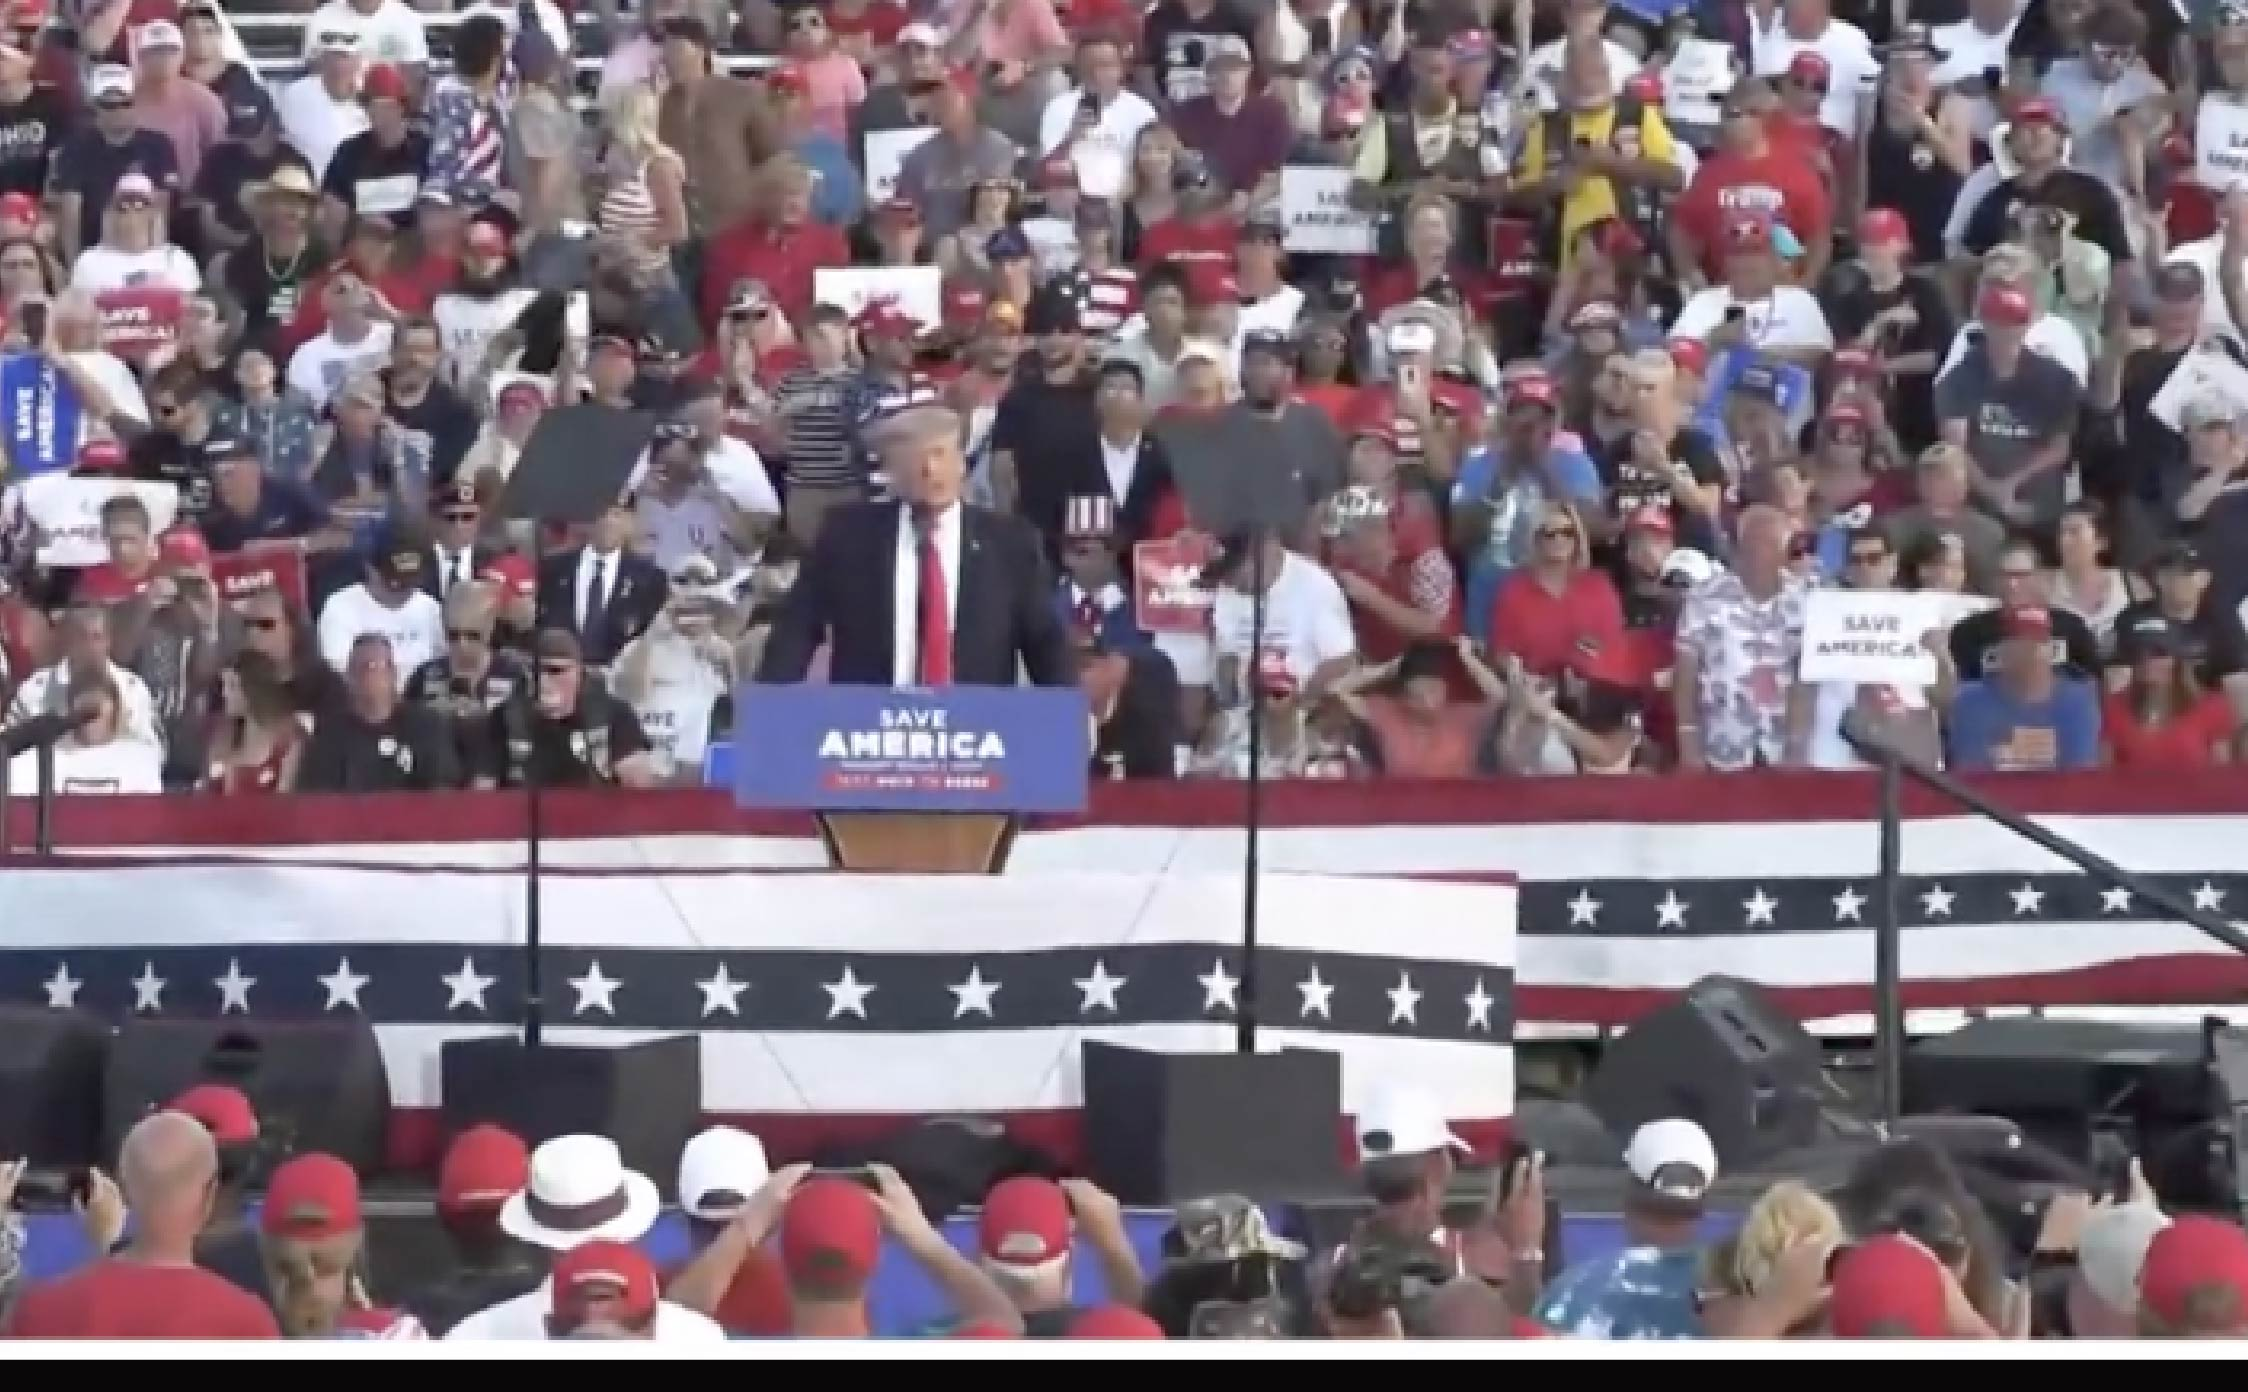 [VIDEO] One Conservative Pundit Just Made a Keen Observation About Trump's Rally...